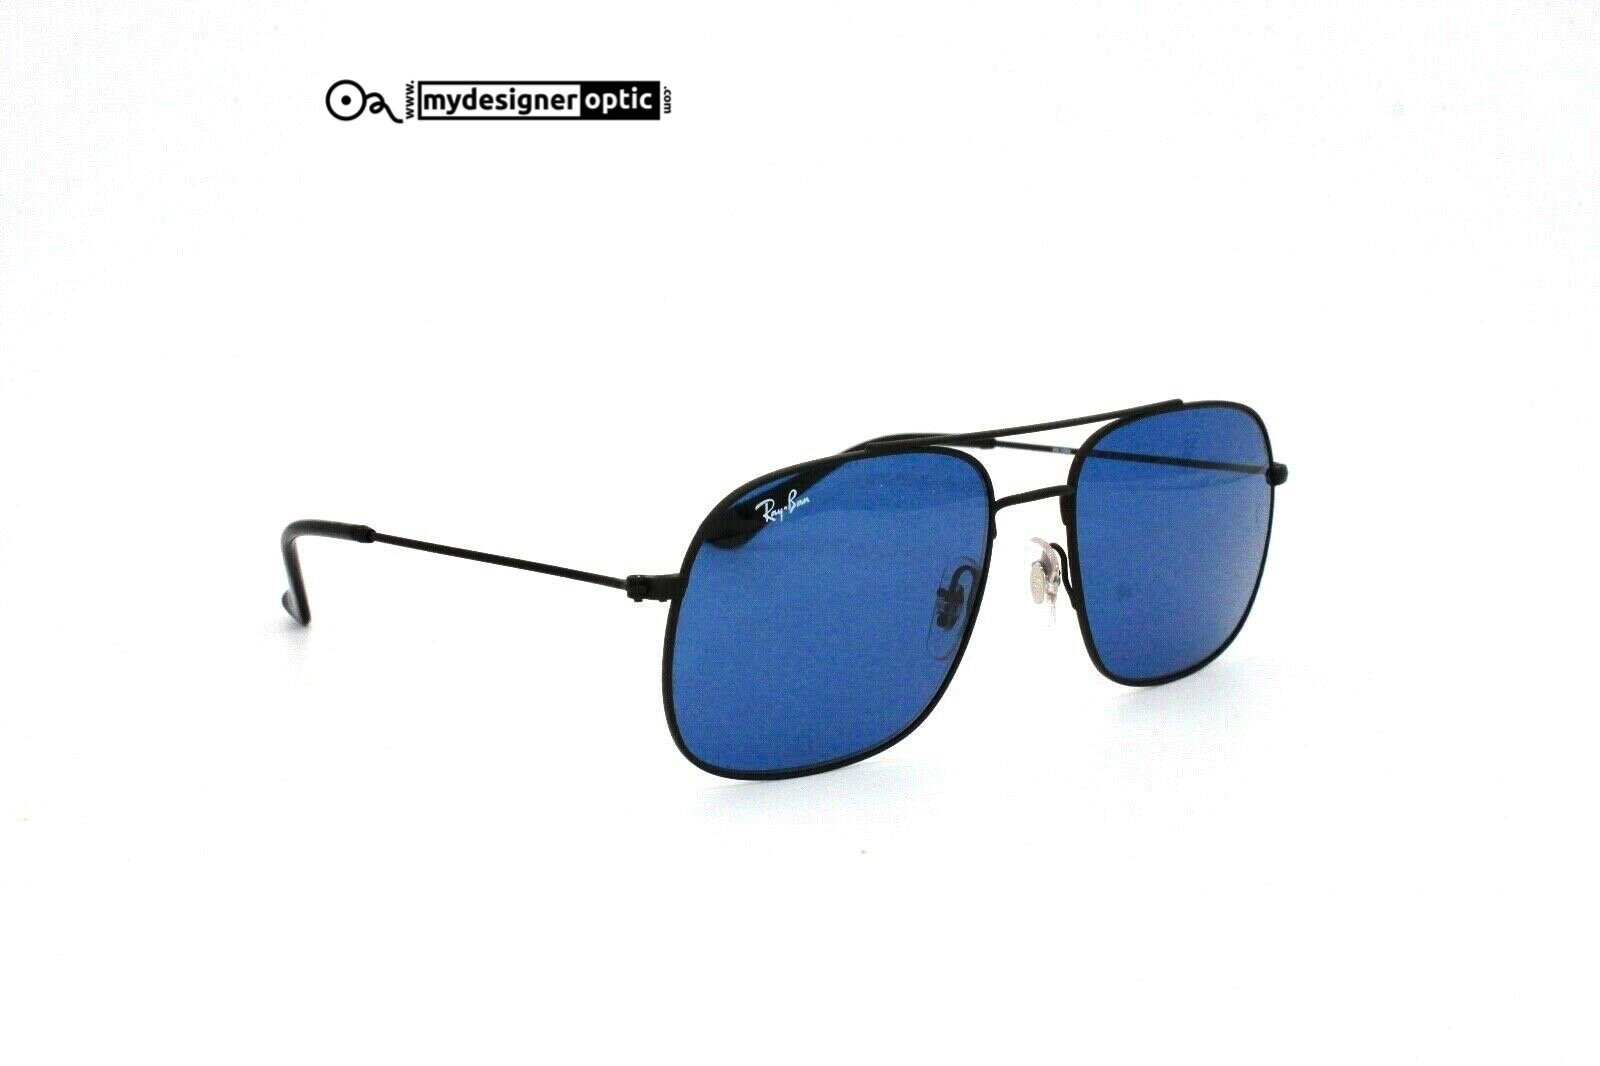 Ray Ban Sunglasses RB 3595 ANDREA 9014/80 56 17 140 3N (DEADSTOCK) - Mydesigneroptic